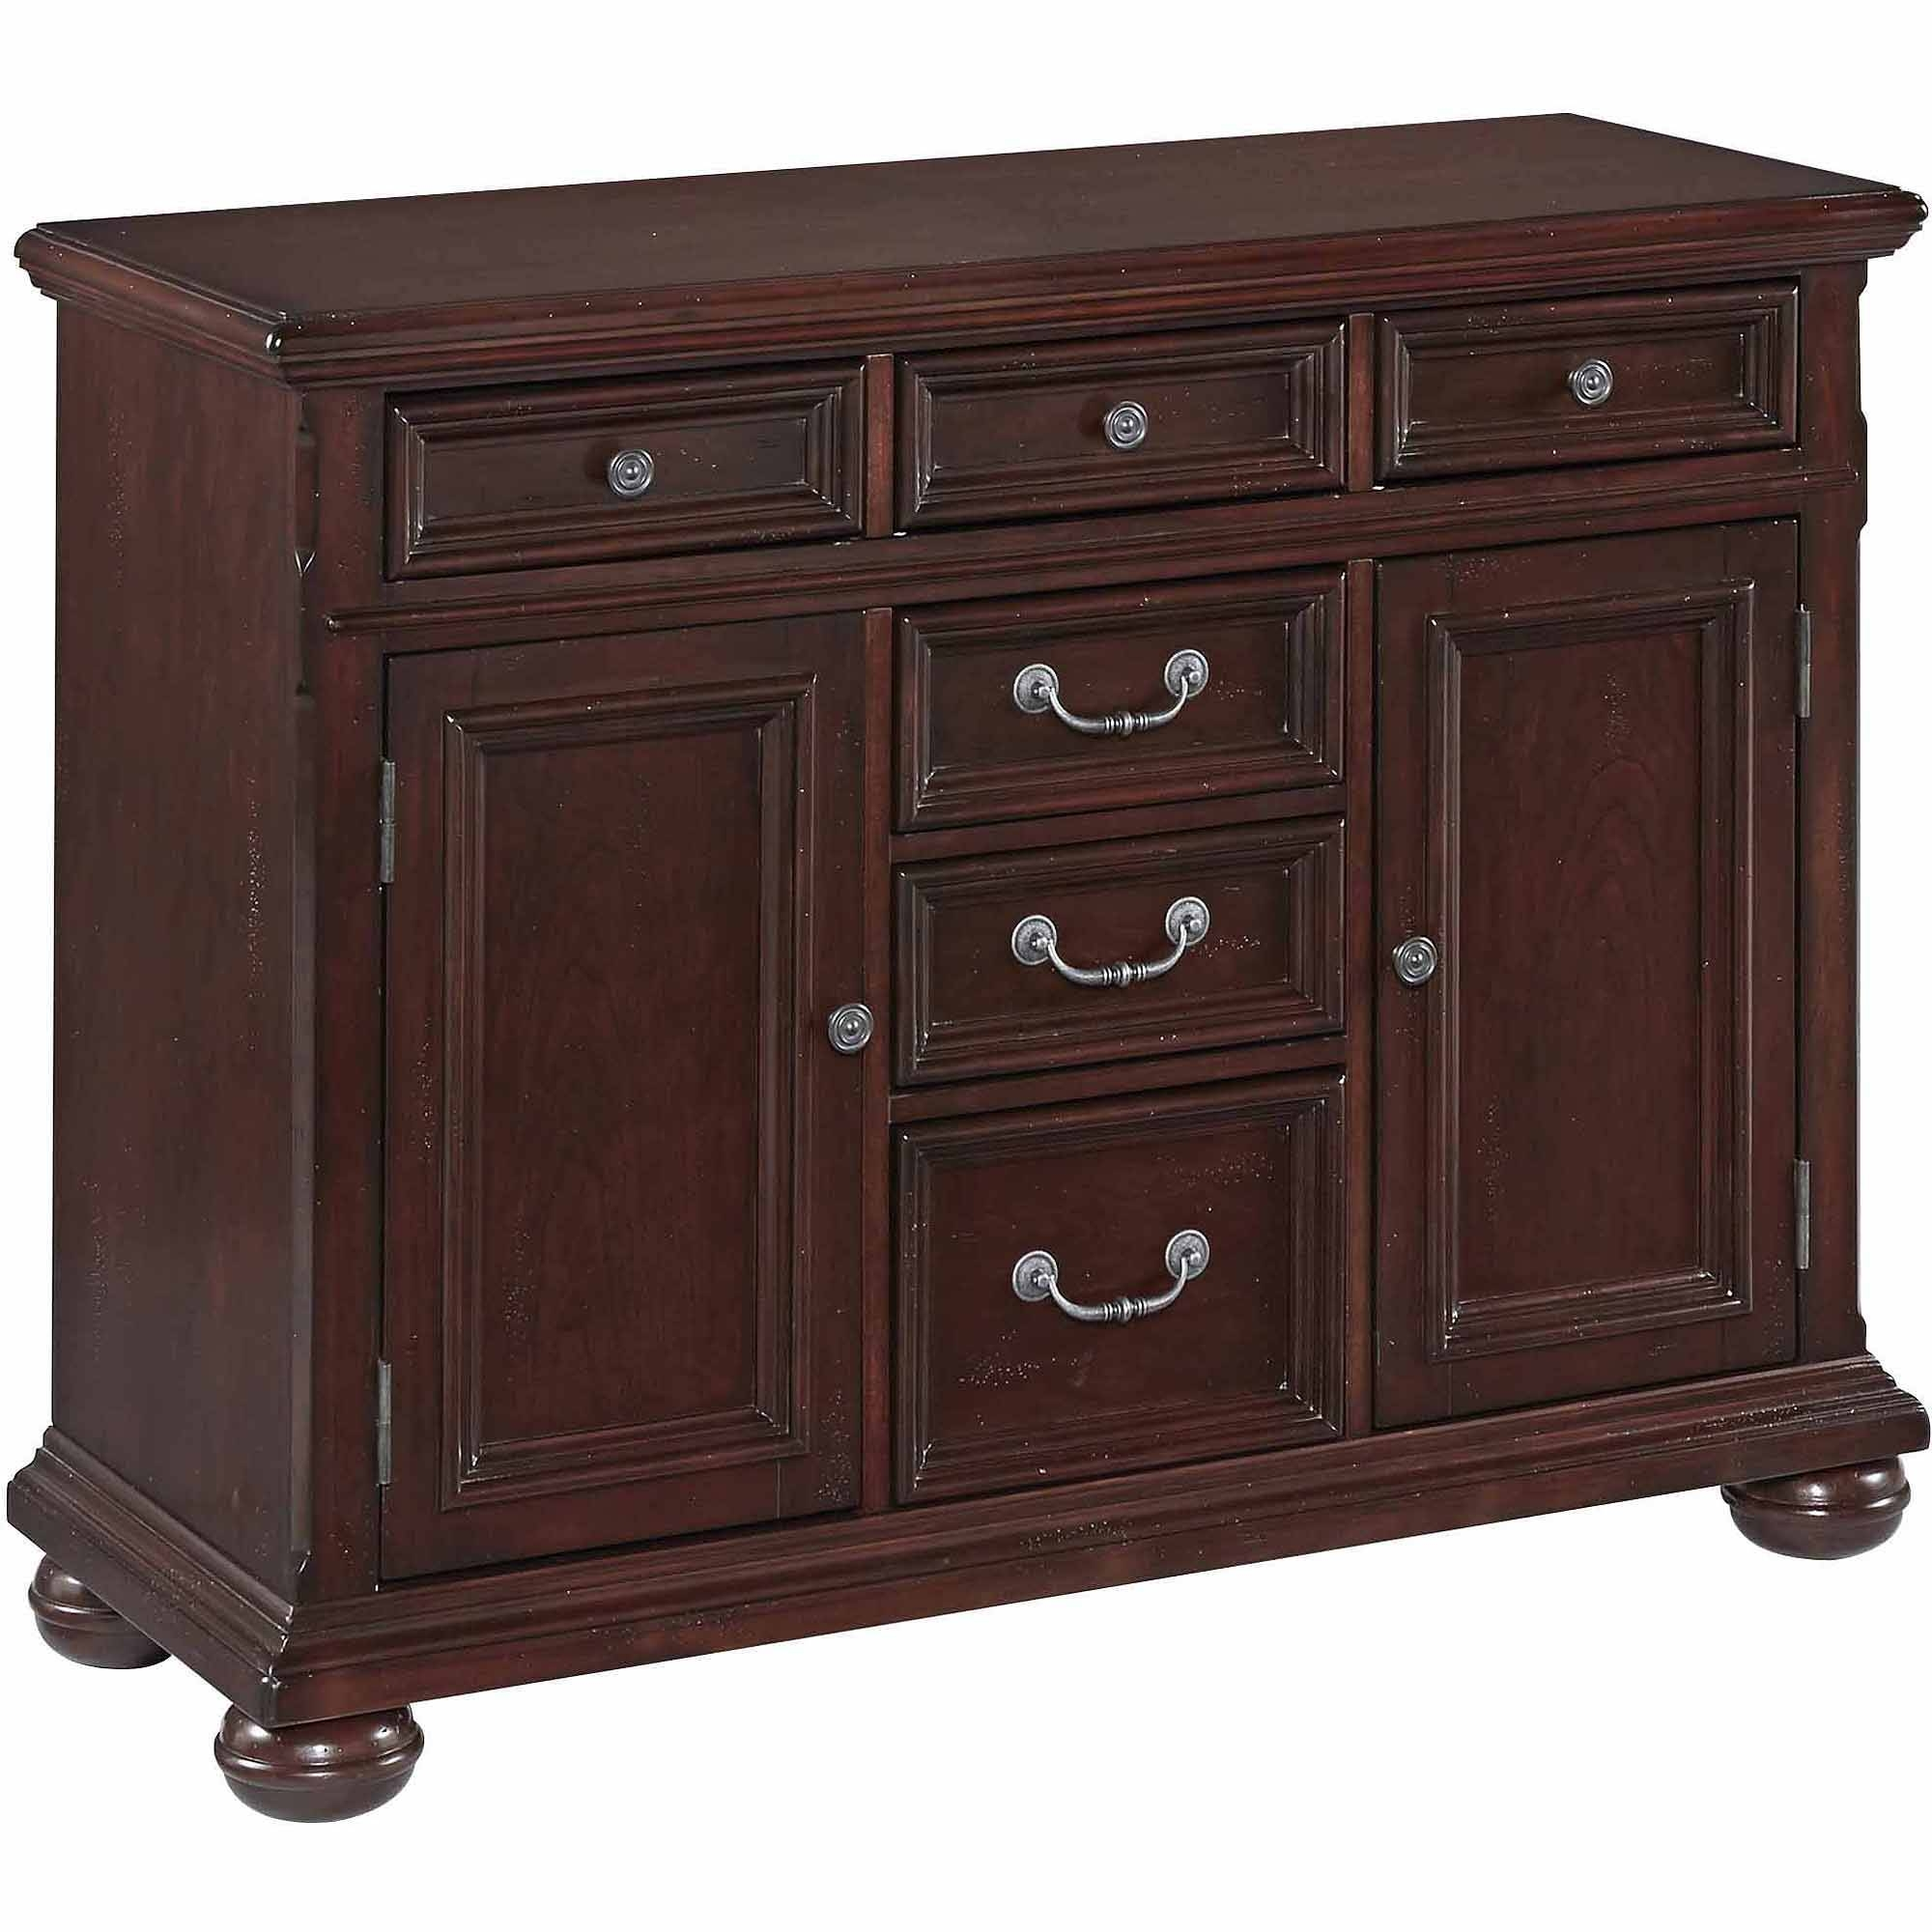 Sideboards & Buffets – Walmart In Best And Newest Sideboards With Drawers (#13 of 15)